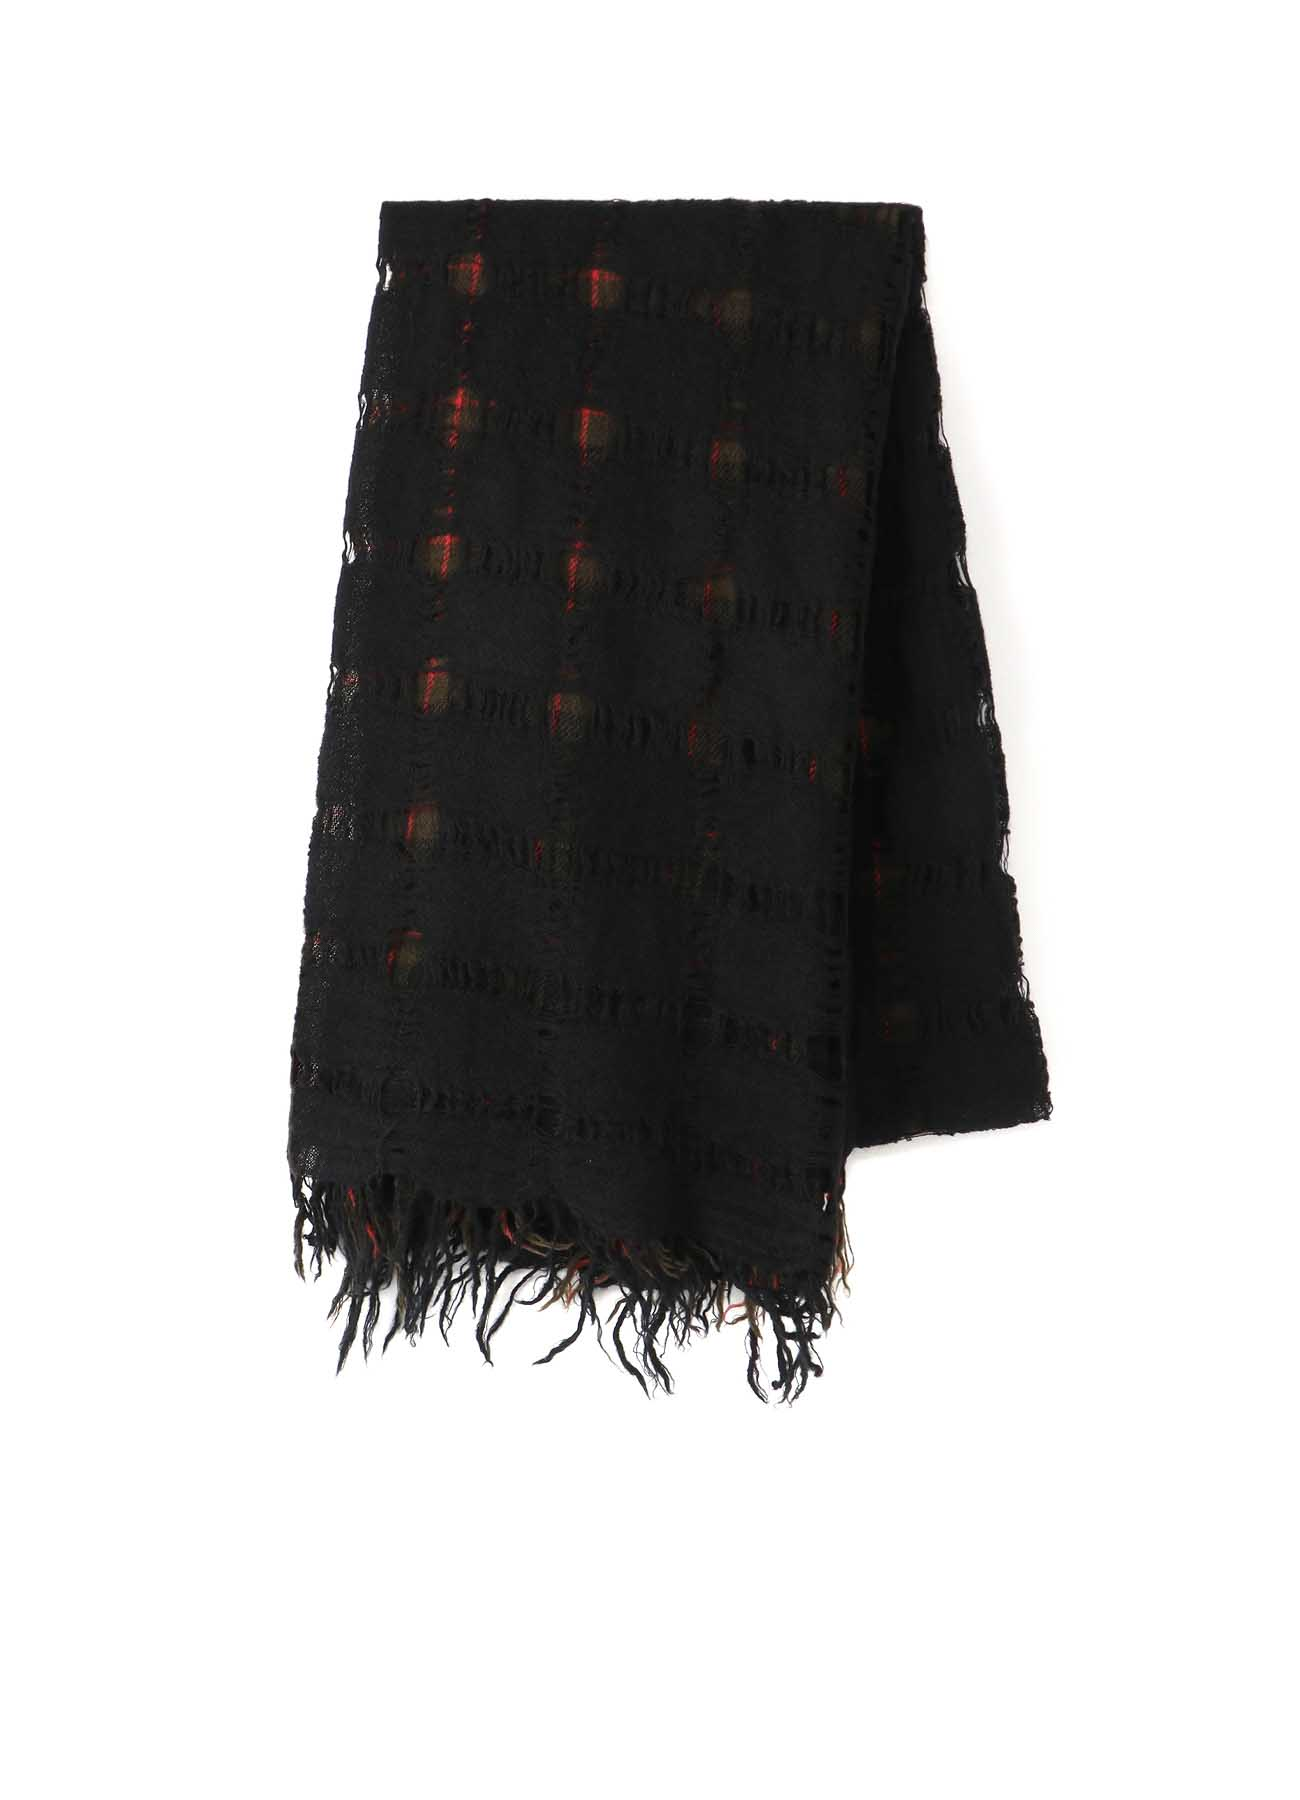 MILLING WOOL PLAID x HOLE STOLE